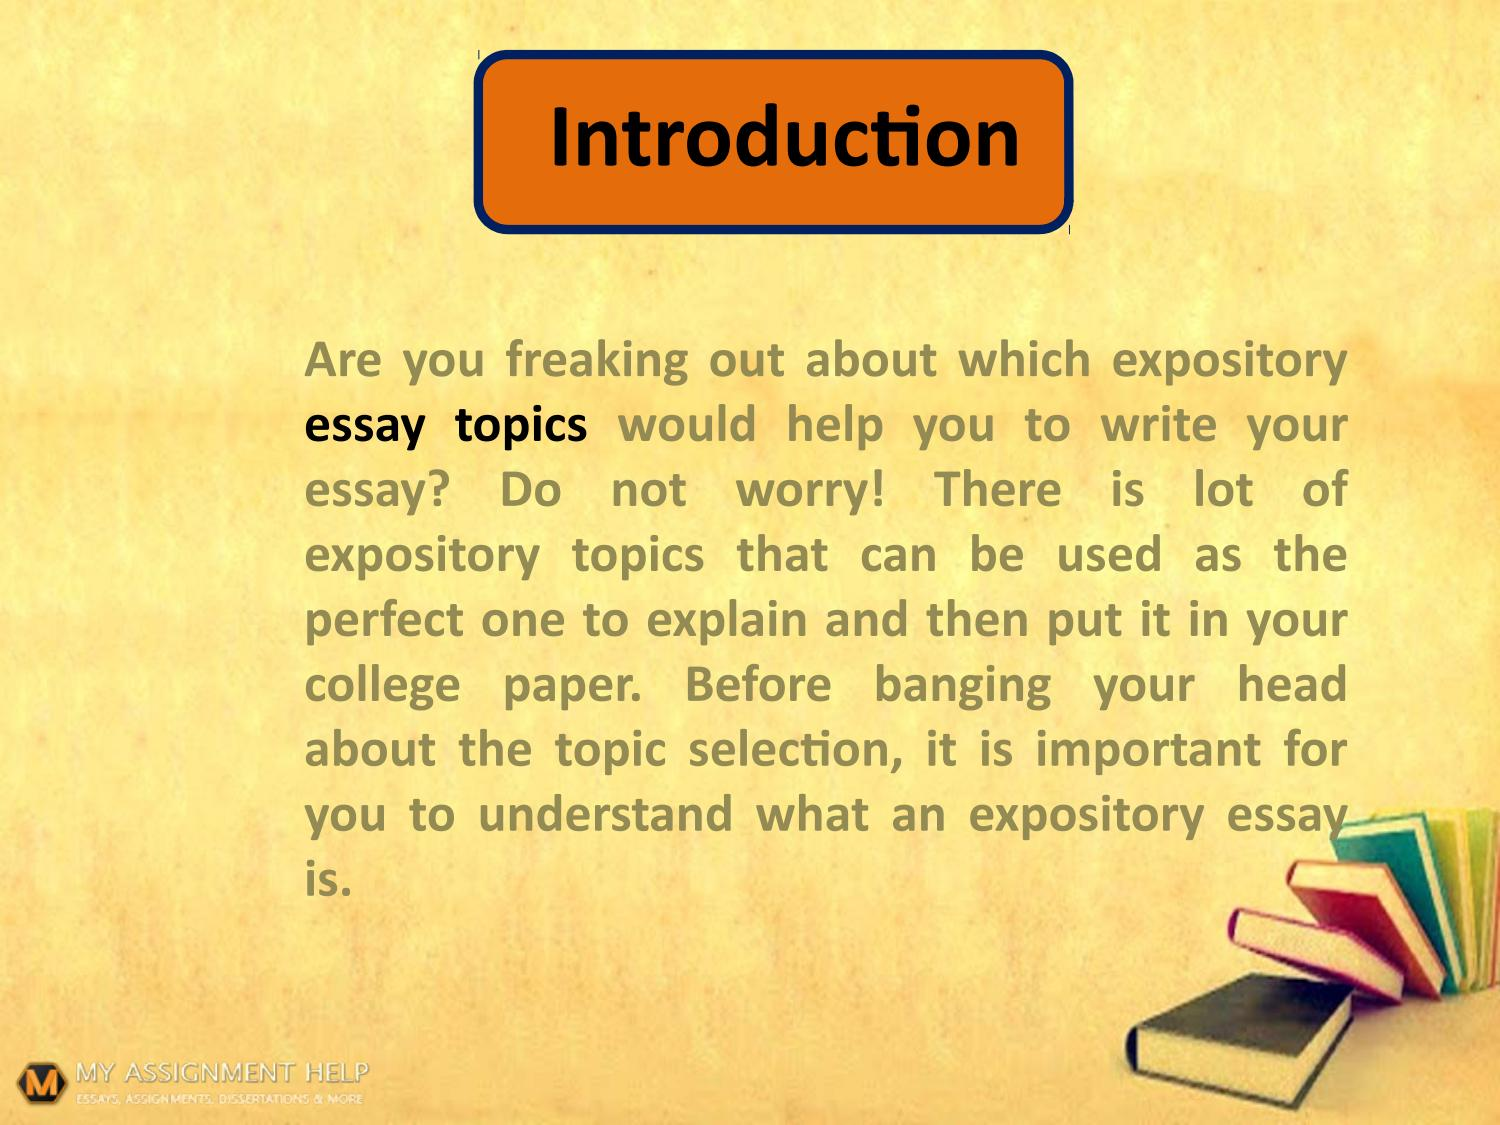 How to manage a difficult expository essay topic? by Levi Baxter - issuu